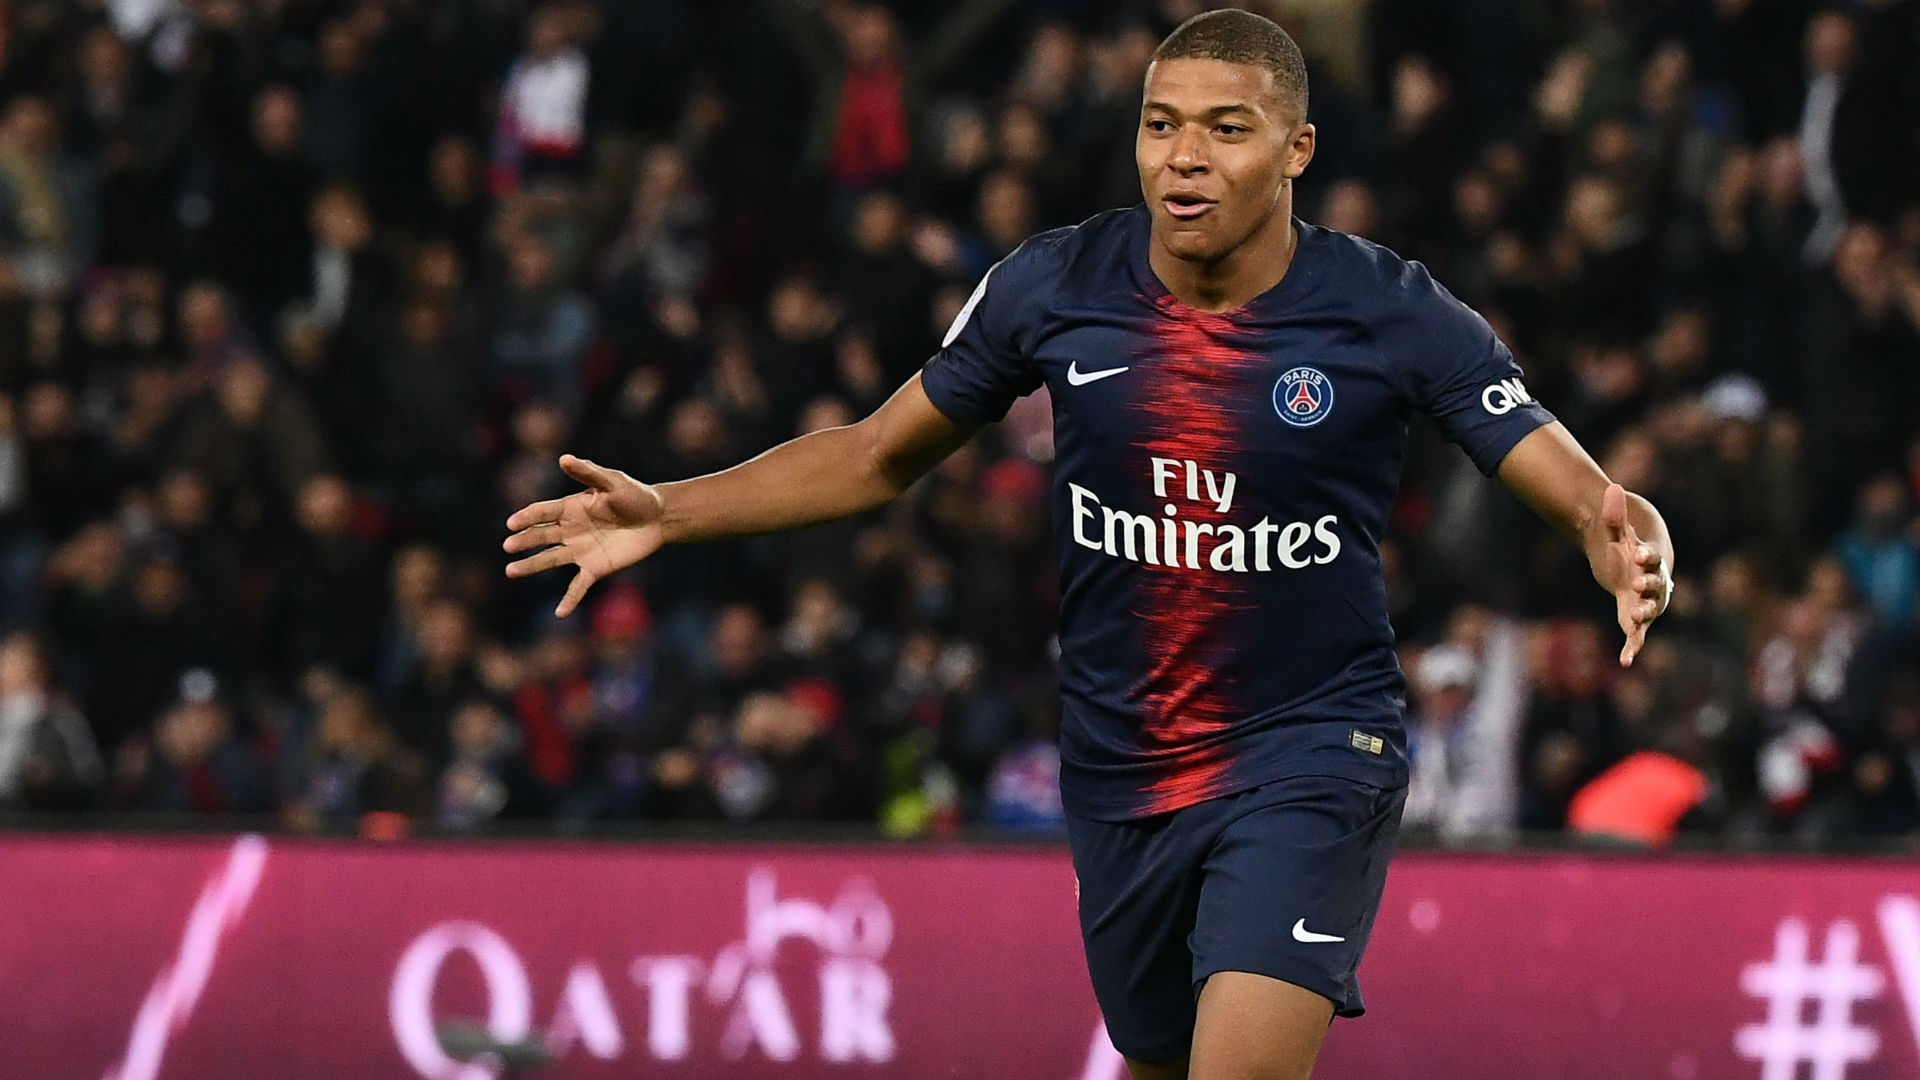 Mbappe stars as PSG break 82-year-old record